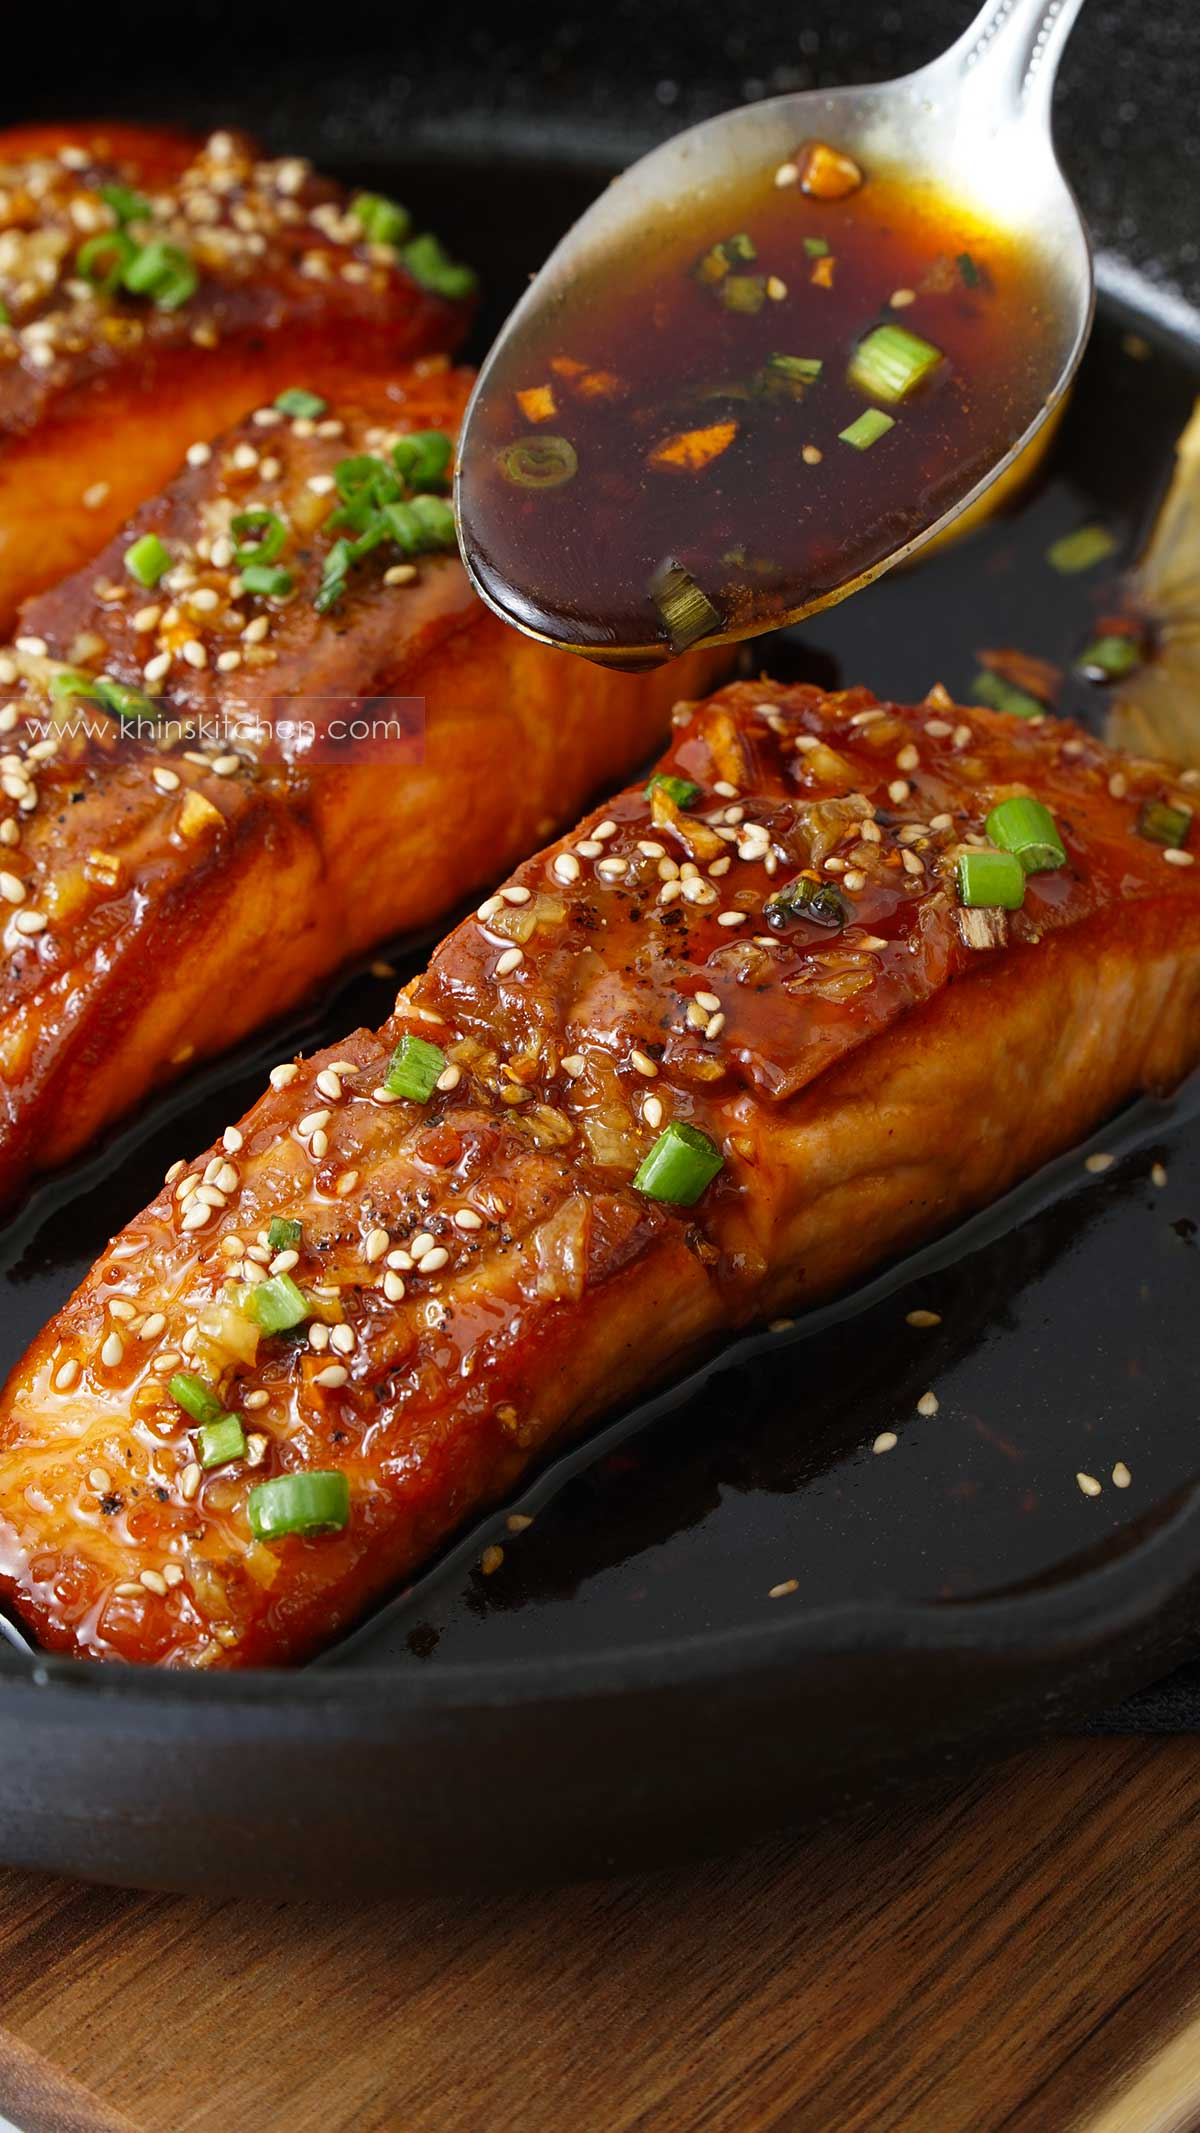 A skillet filled honey garlic salmon and sauce drizzling from spoon.